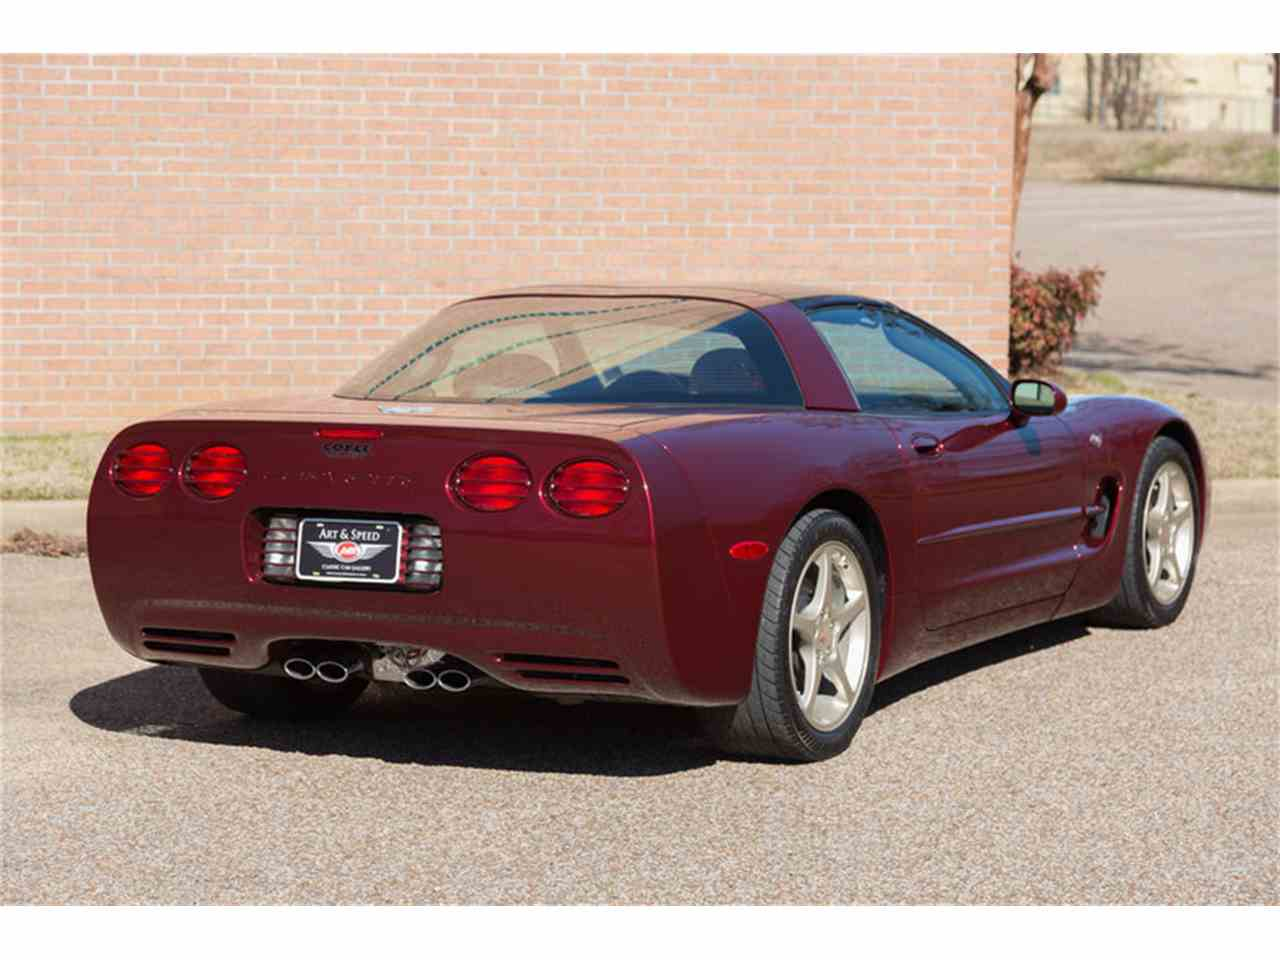 Large Picture of 2003 Chevrolet Corvette located in Collierville Tennessee - $25,900.00 - LTSQ